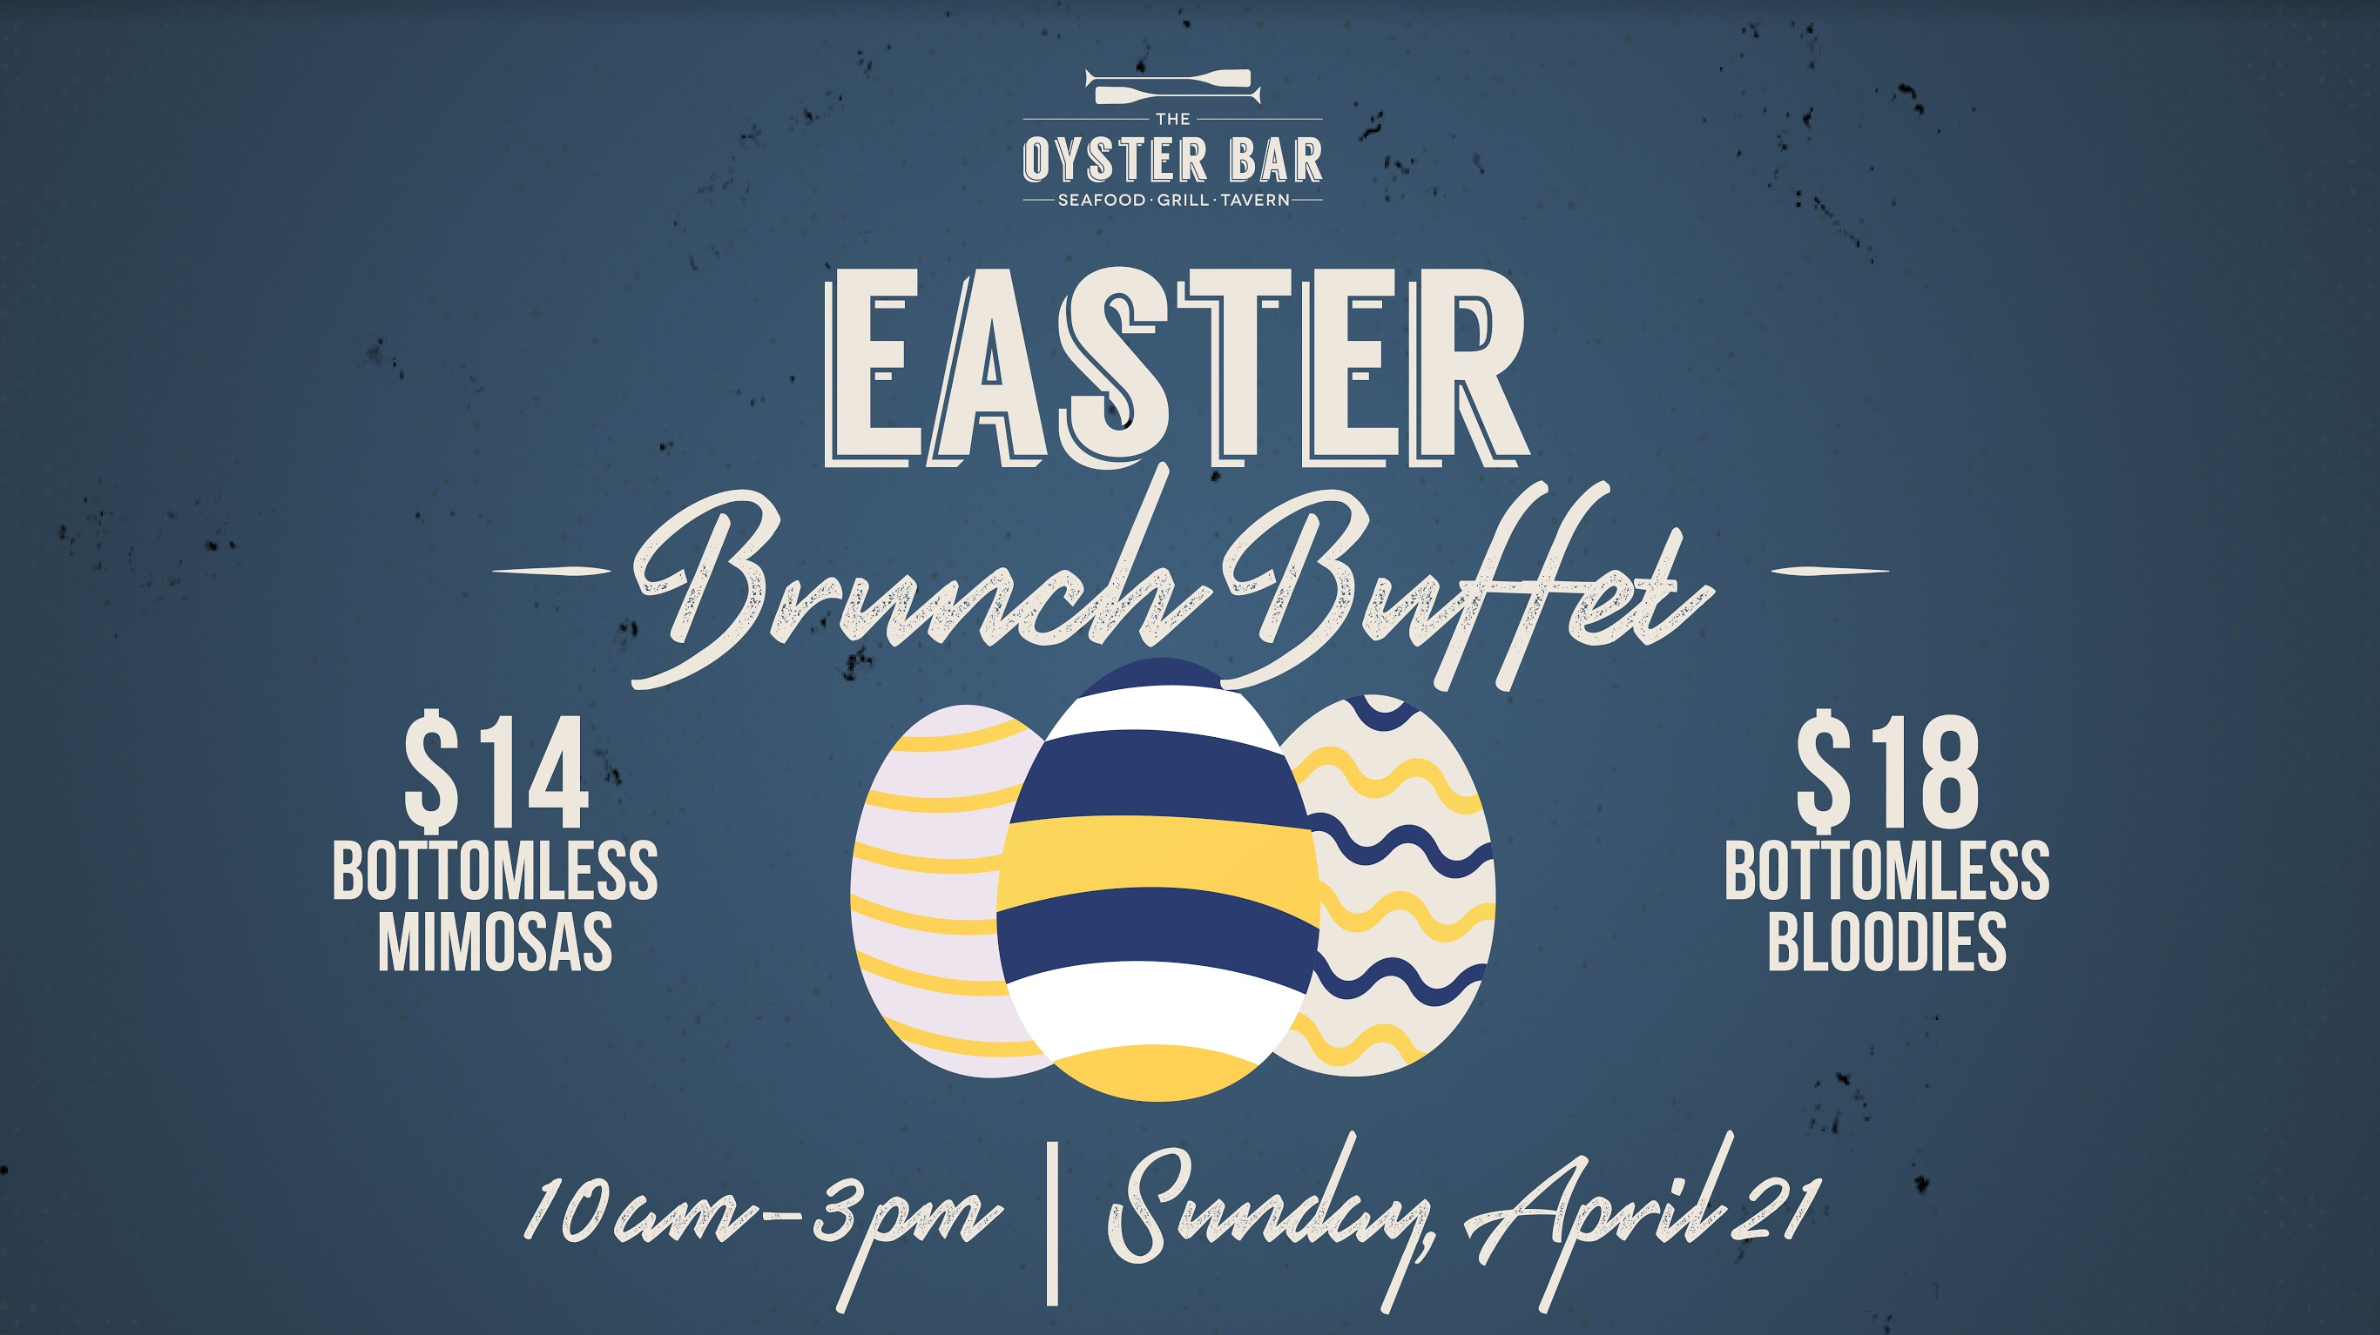 easter brunch buffet oyster bar st pete evolve & co dtsp